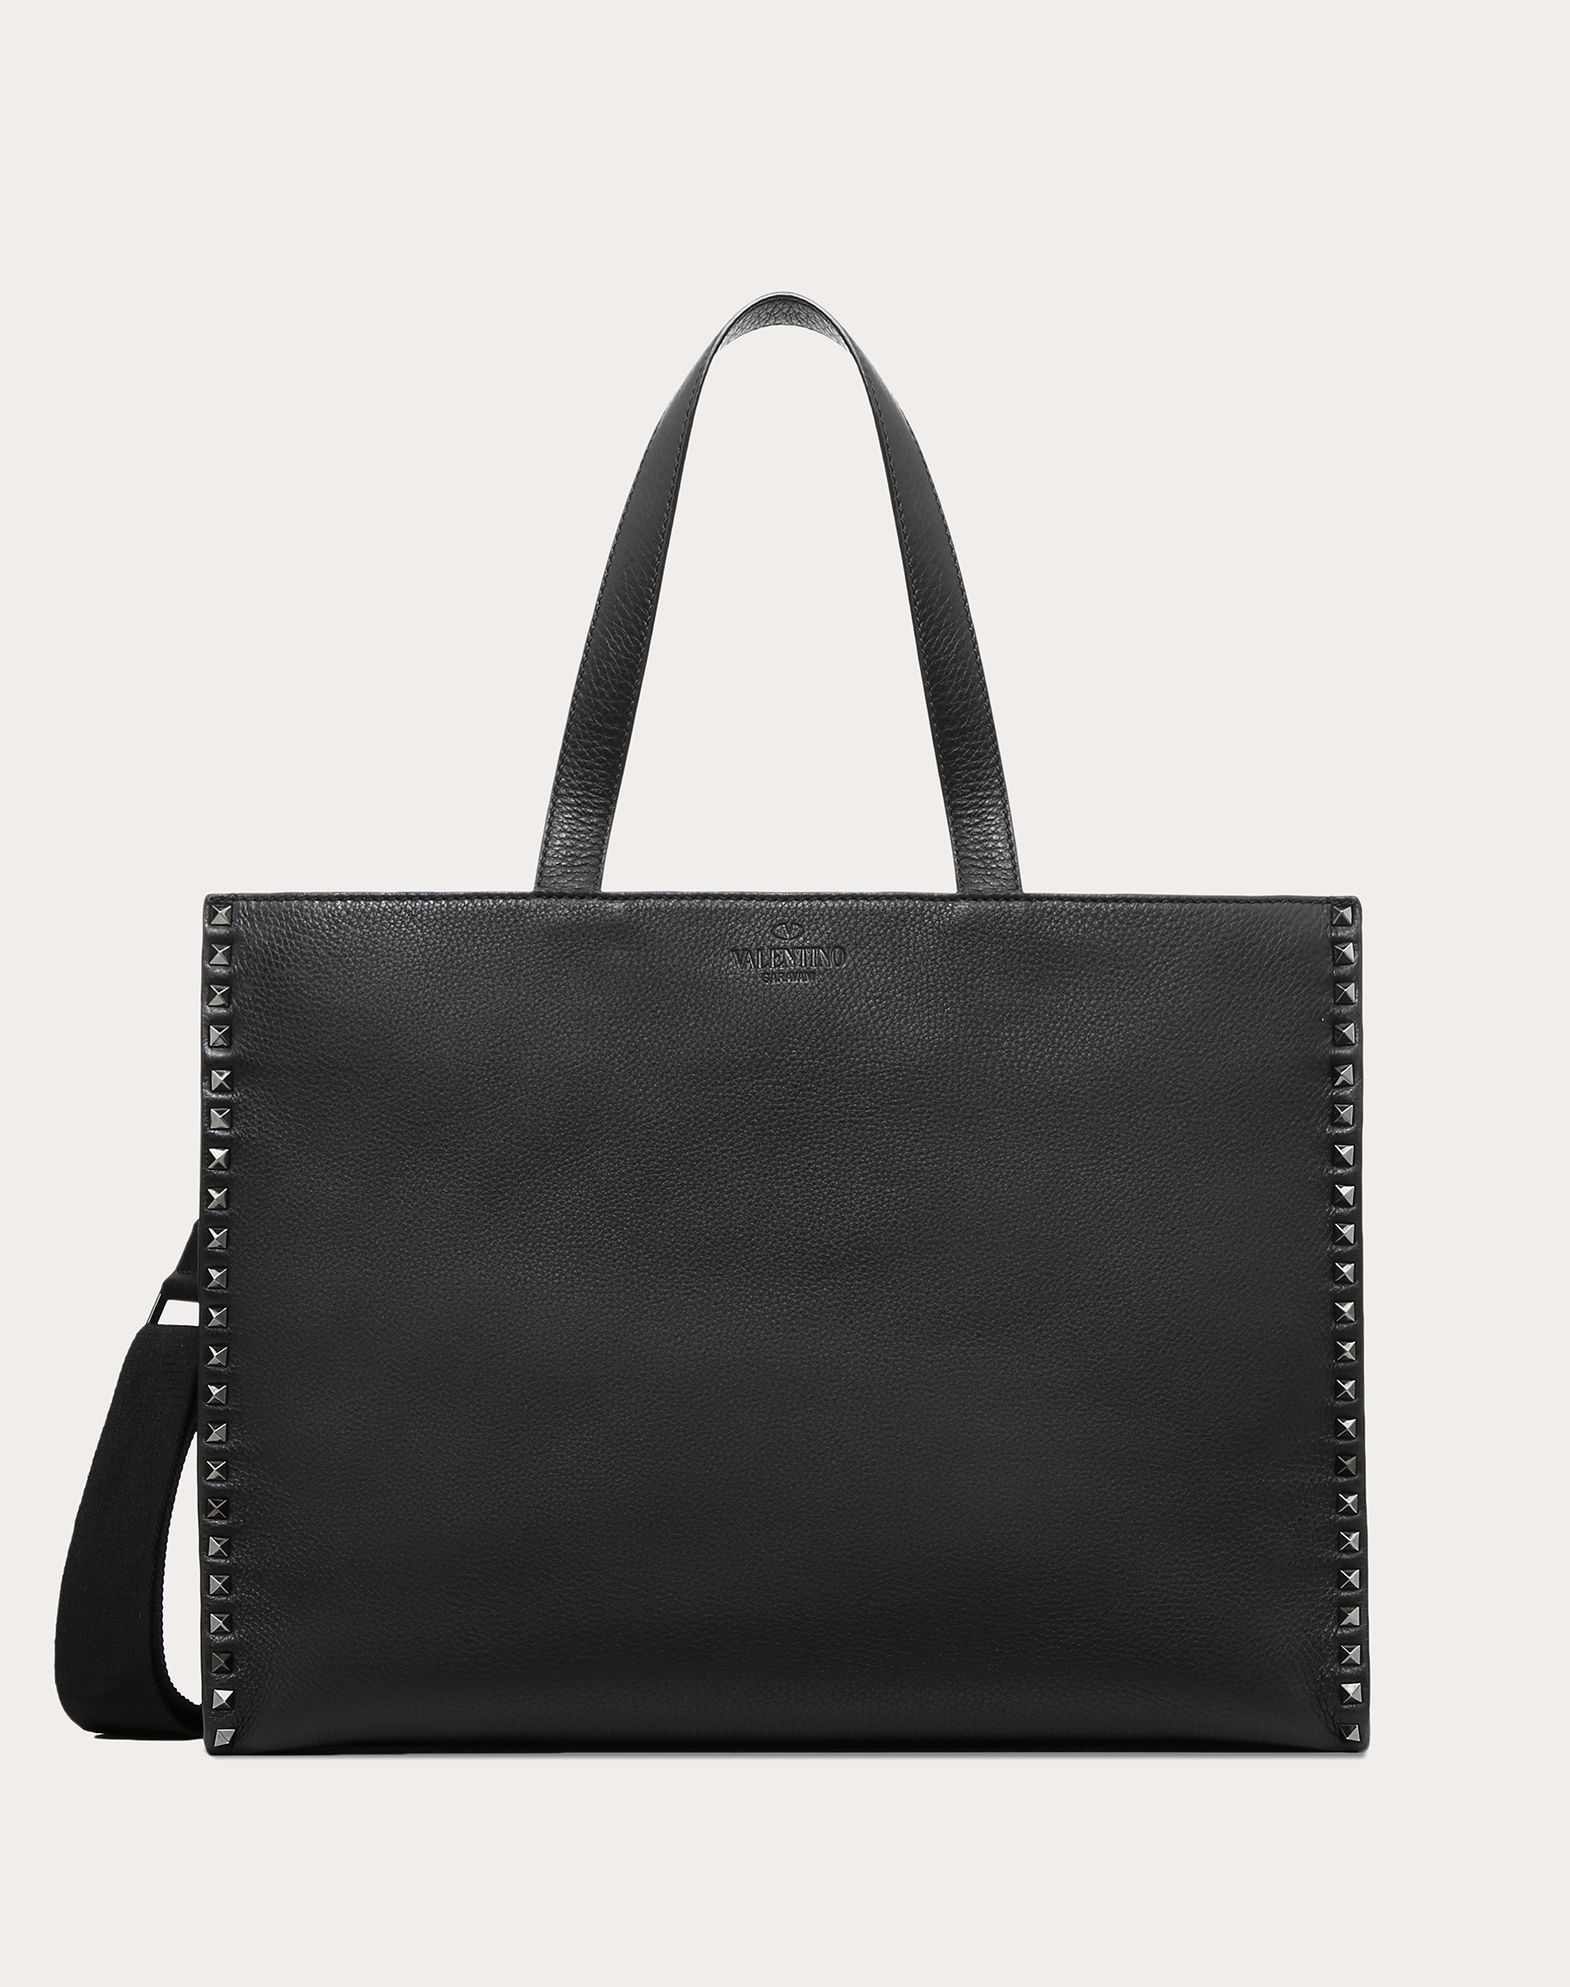 GRAIN CALFSKIN LEATHER ROCKSTUD TOTE